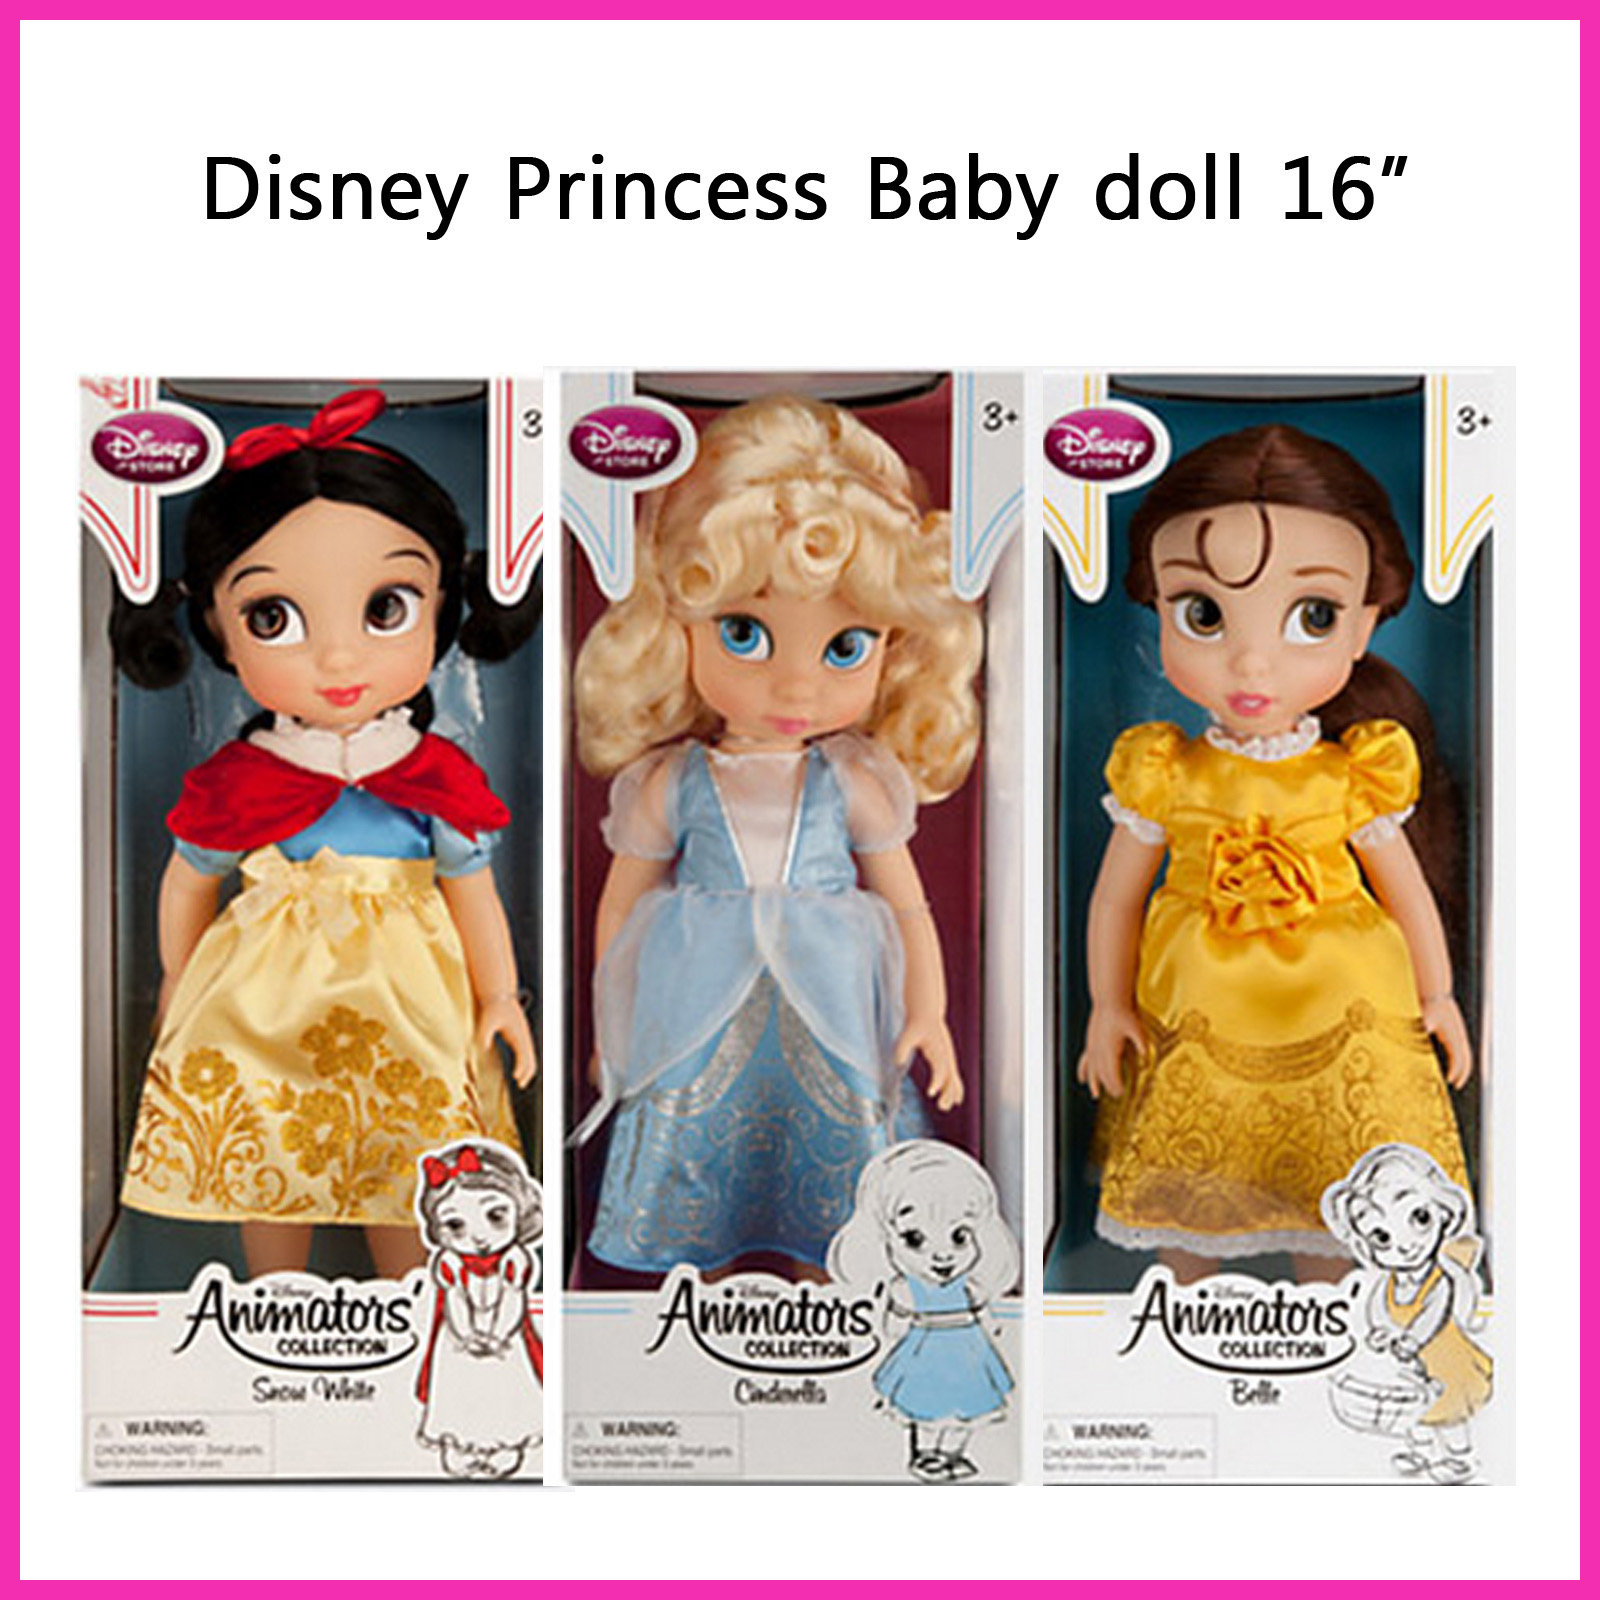 Disney Princess Toddler Doll With Dress: Disney Baby Doll Clothes A Line Dress Clothing Animator's